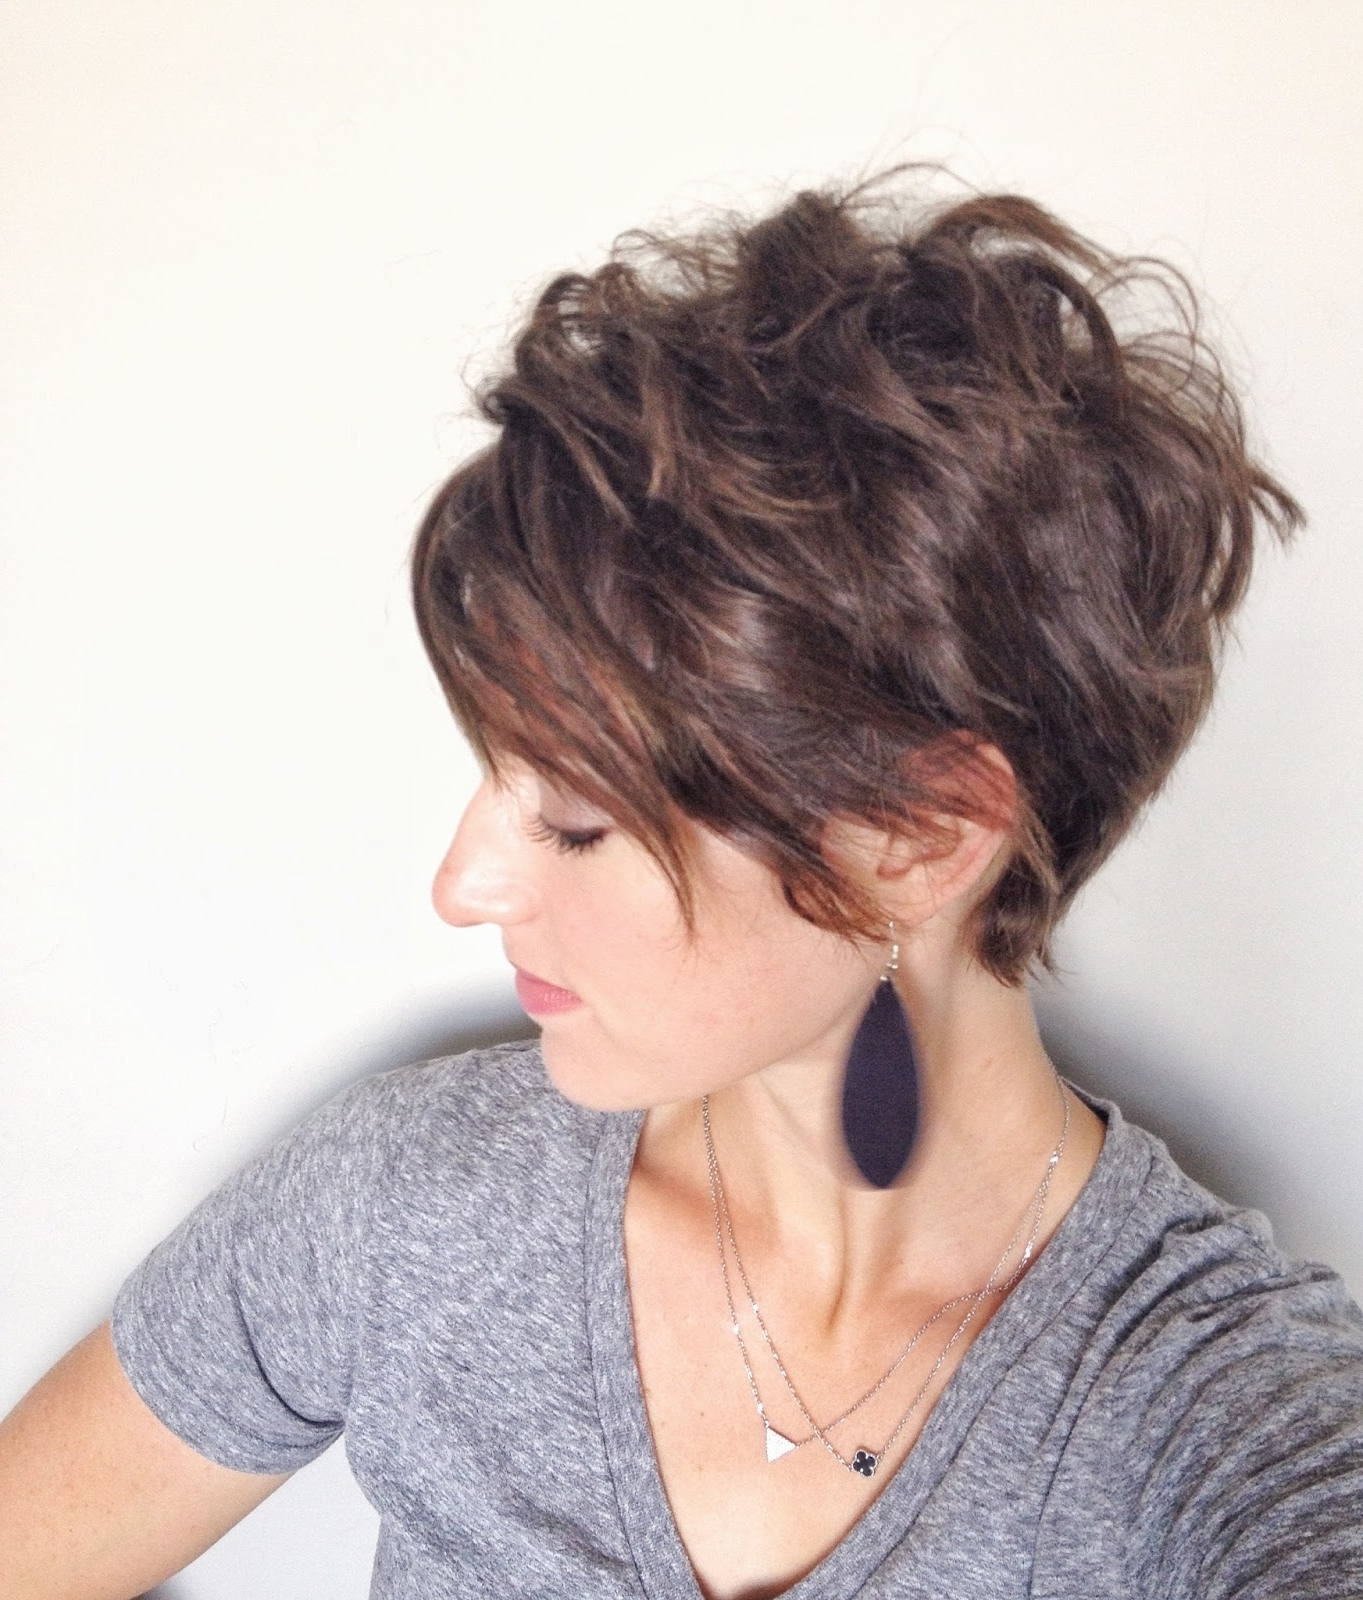 Maybe Matilda: Asymmetrical Pixie Cut | Hairstyles I Like Pertaining To Most Current Pixie Hairstyles With Long Bangs (View 14 of 15)